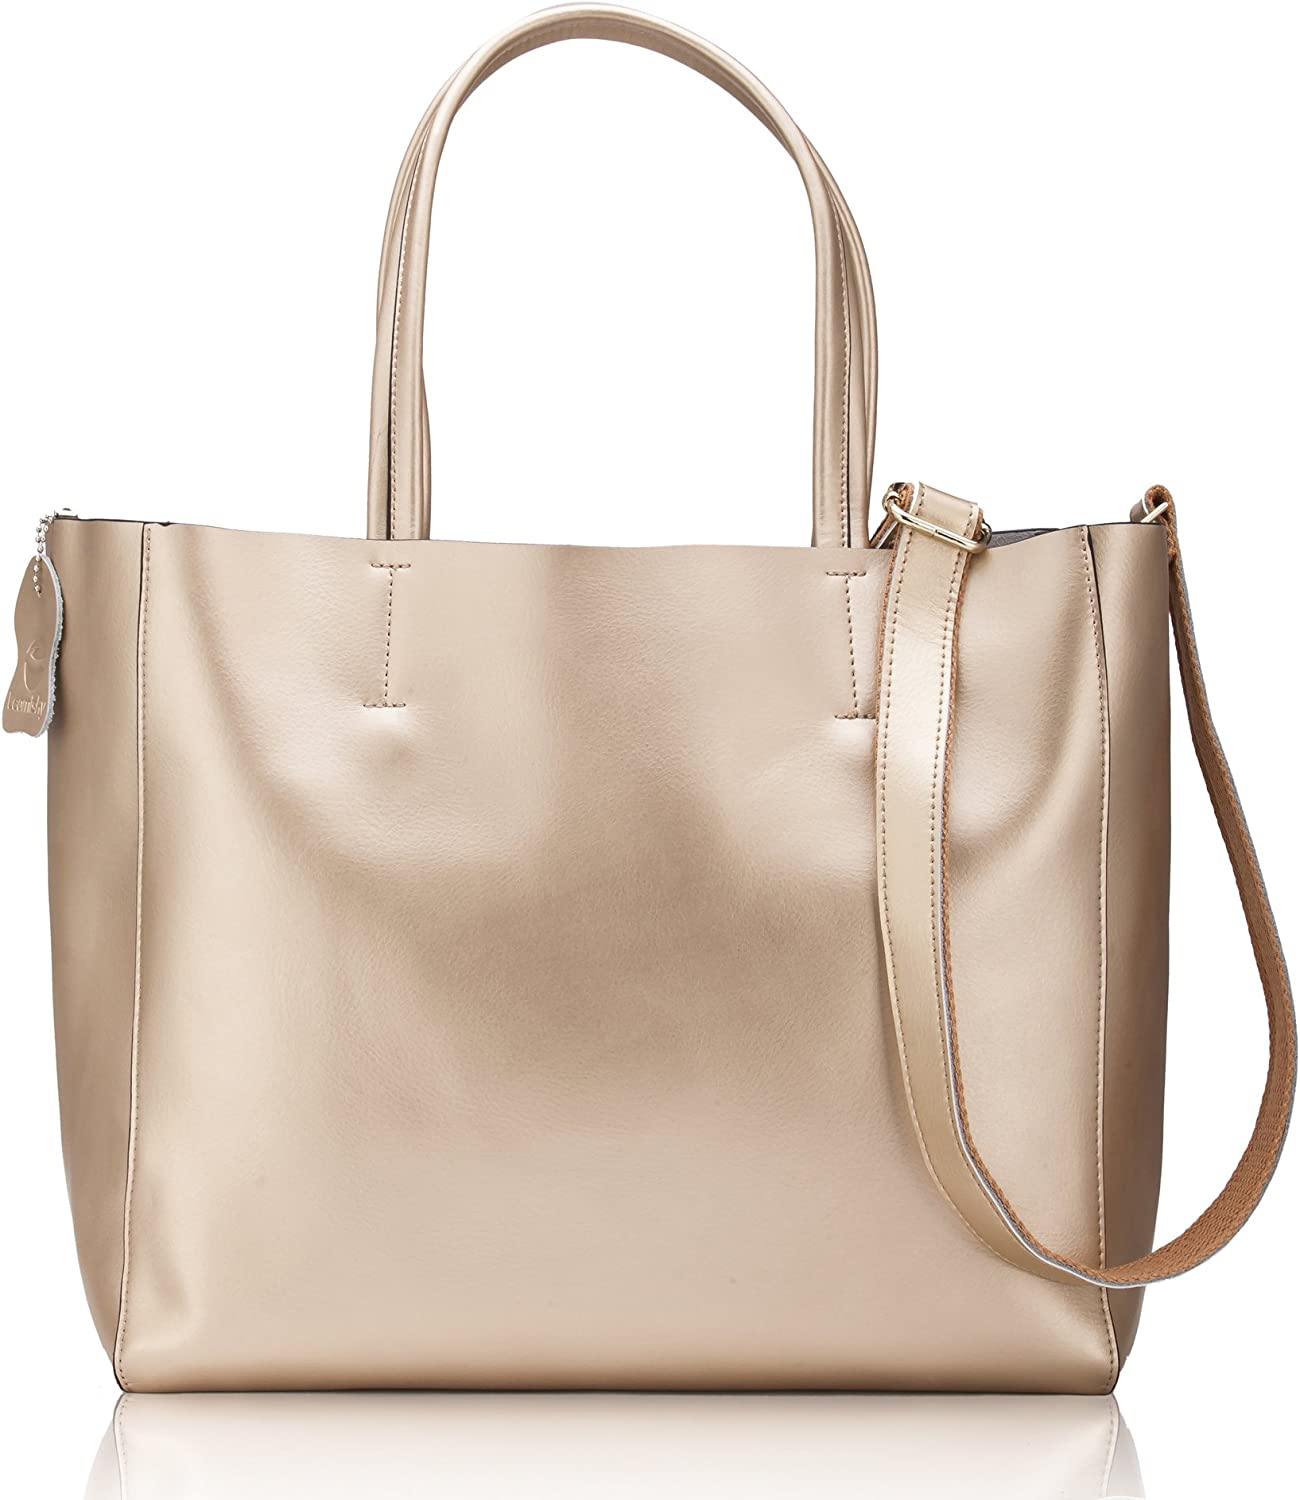 Women' s Casual Shoulder Tote Handbag Cross Body Bag with A Large Capacity Made of Soft Pearl Cowhide Genuine Leather